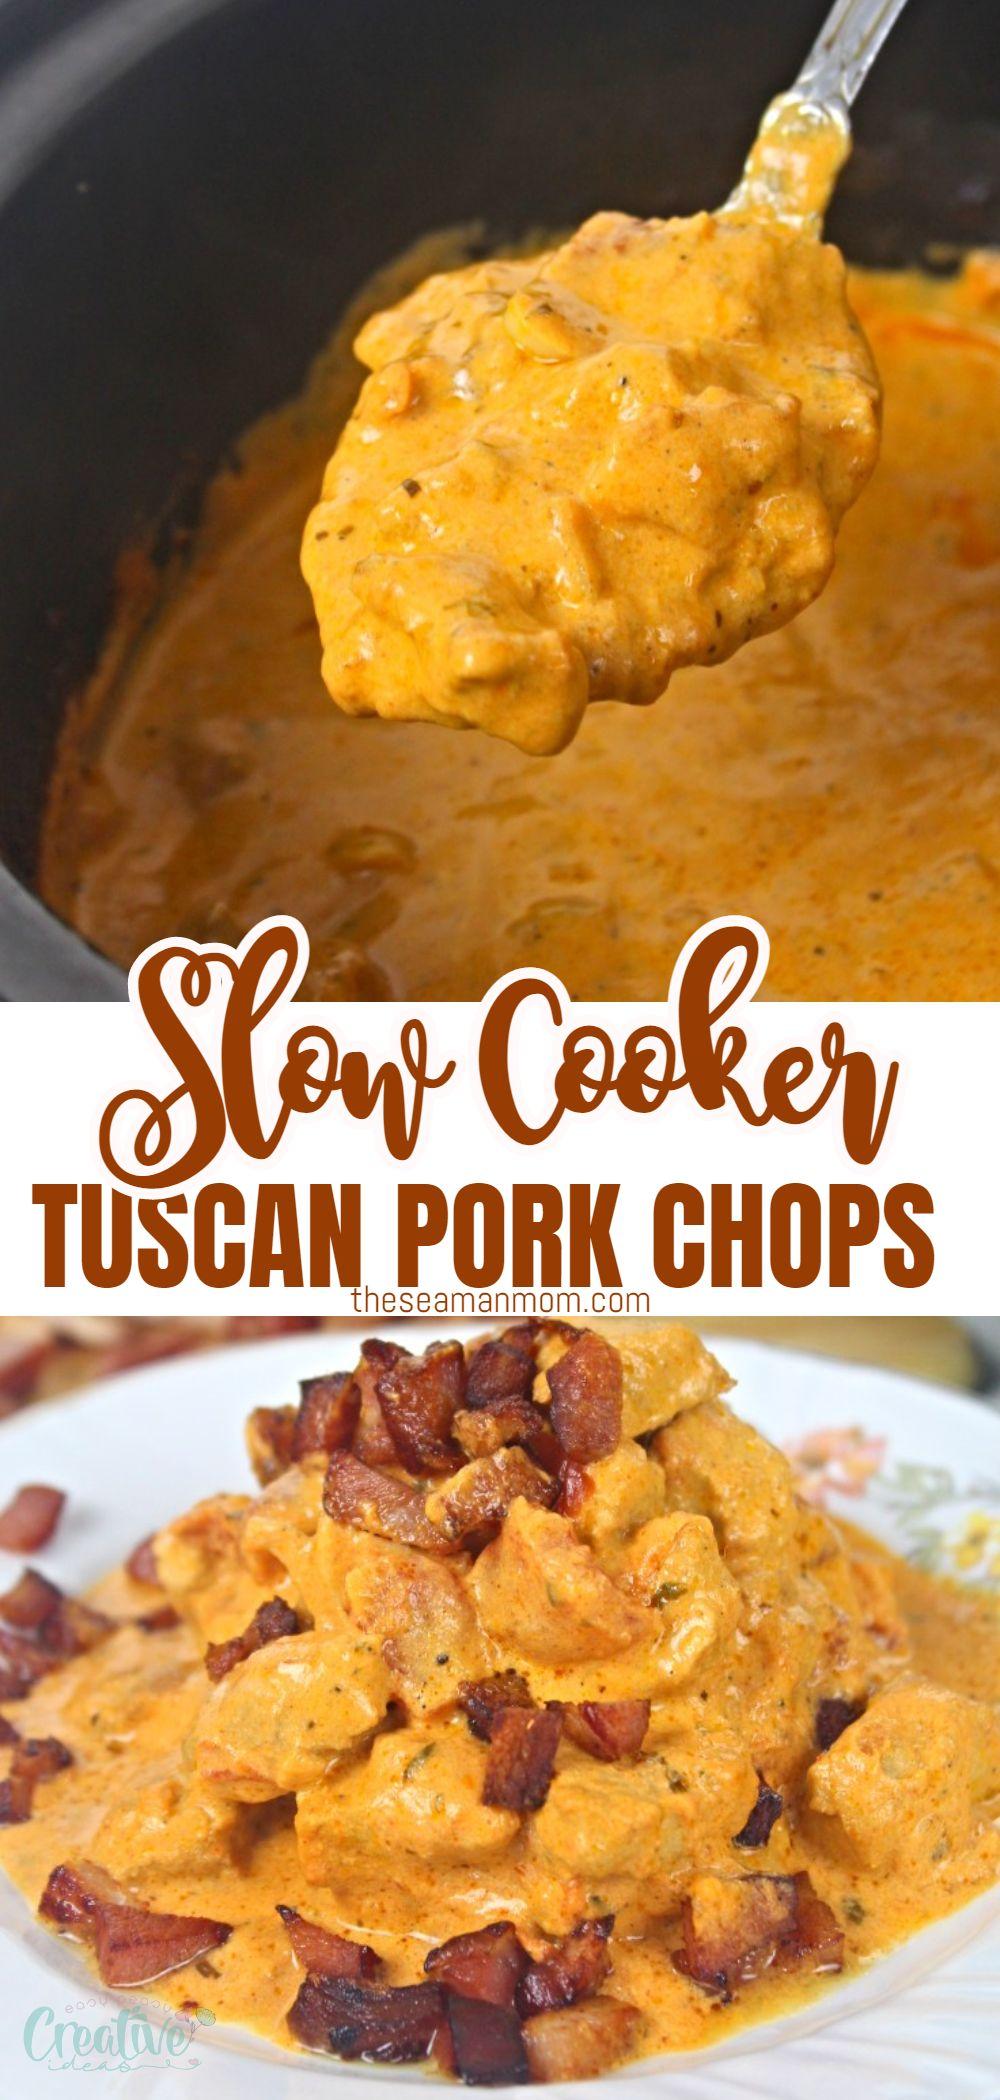 Slow cooker pork chops is a very luscious but easy recipe to make with ingredients you already have at home, so it can easily turn into a staple dish in any home. These creamy Tuscan pork chops can even be a great hit at the next dinner party or family gathering. via @petroneagu